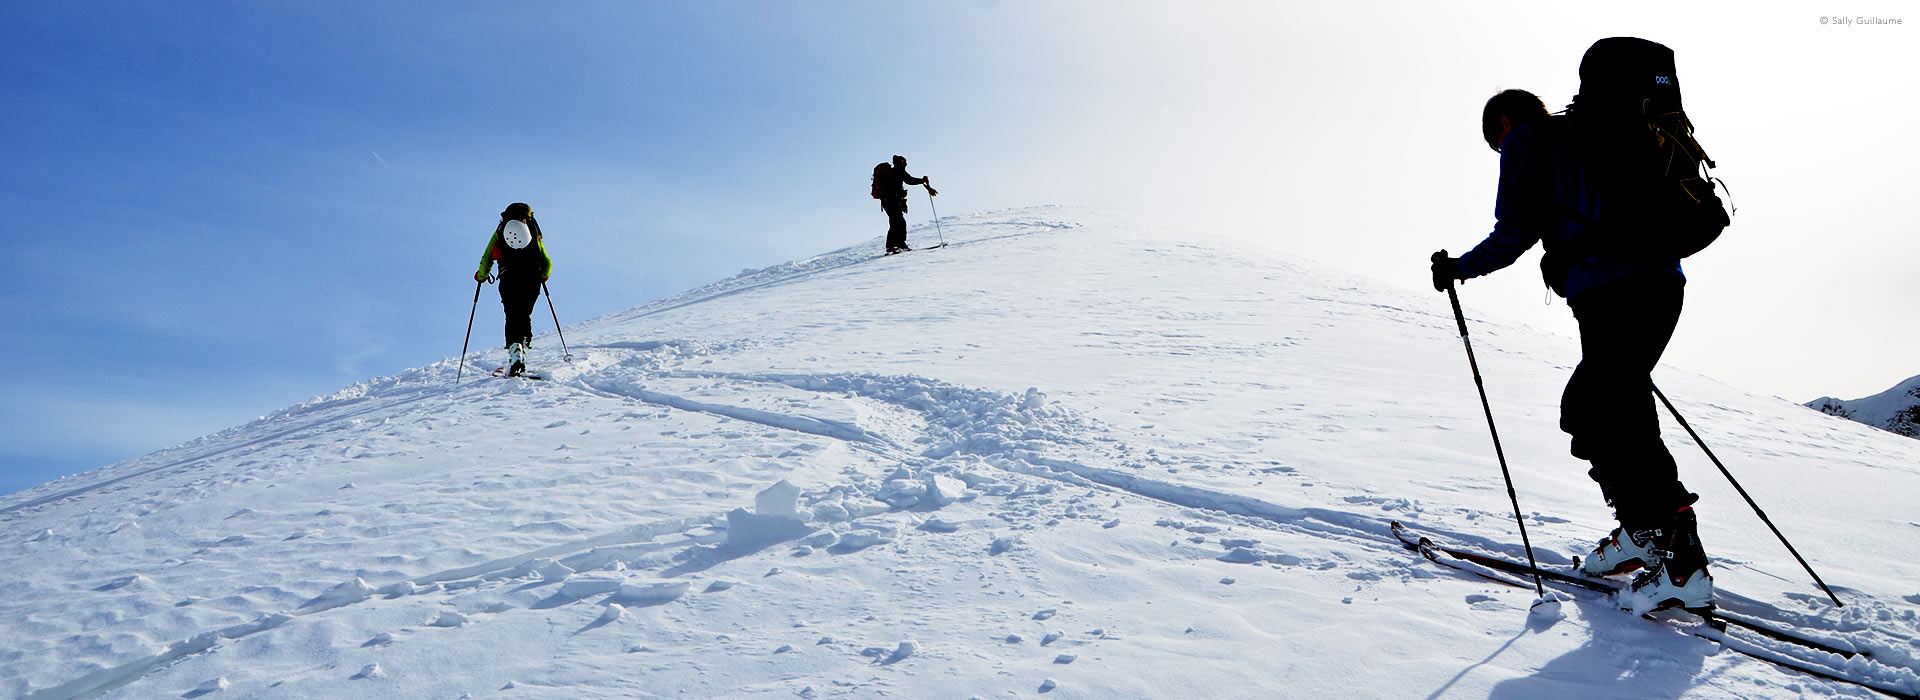 Low, wide view of ski-touring group nearing crest of mountain, French Alps